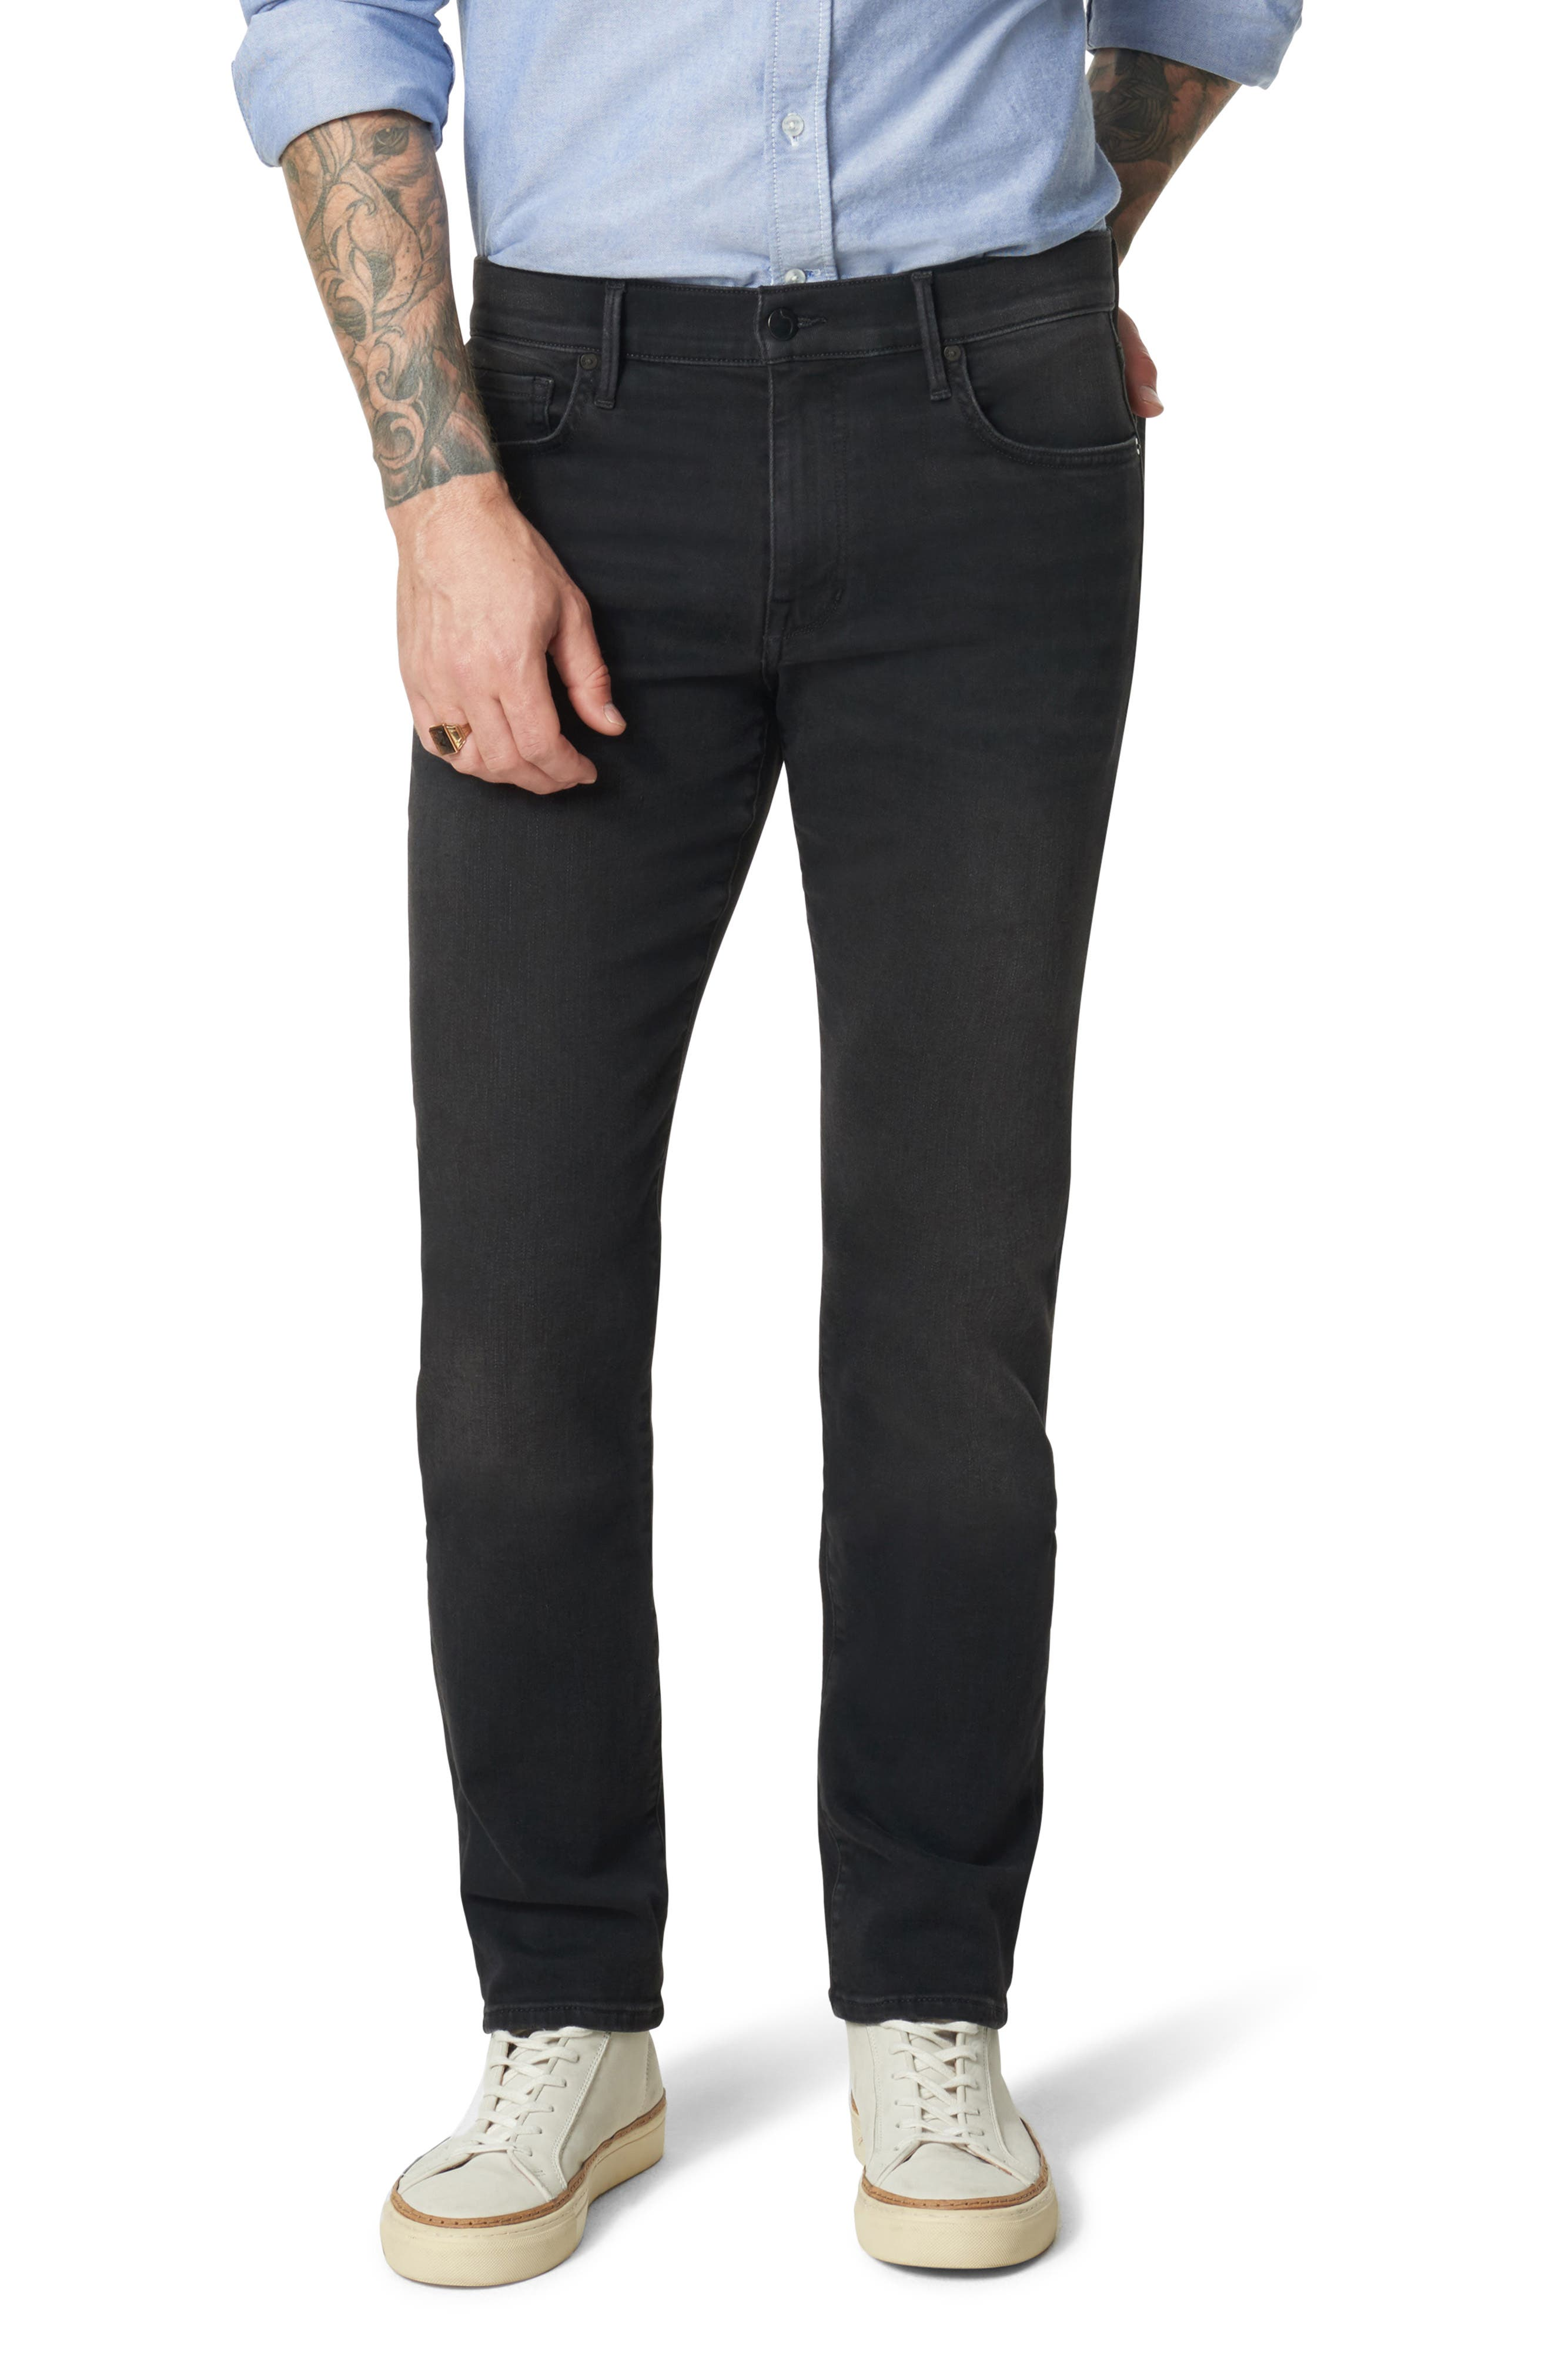 The Asher Slim Fit Jeans